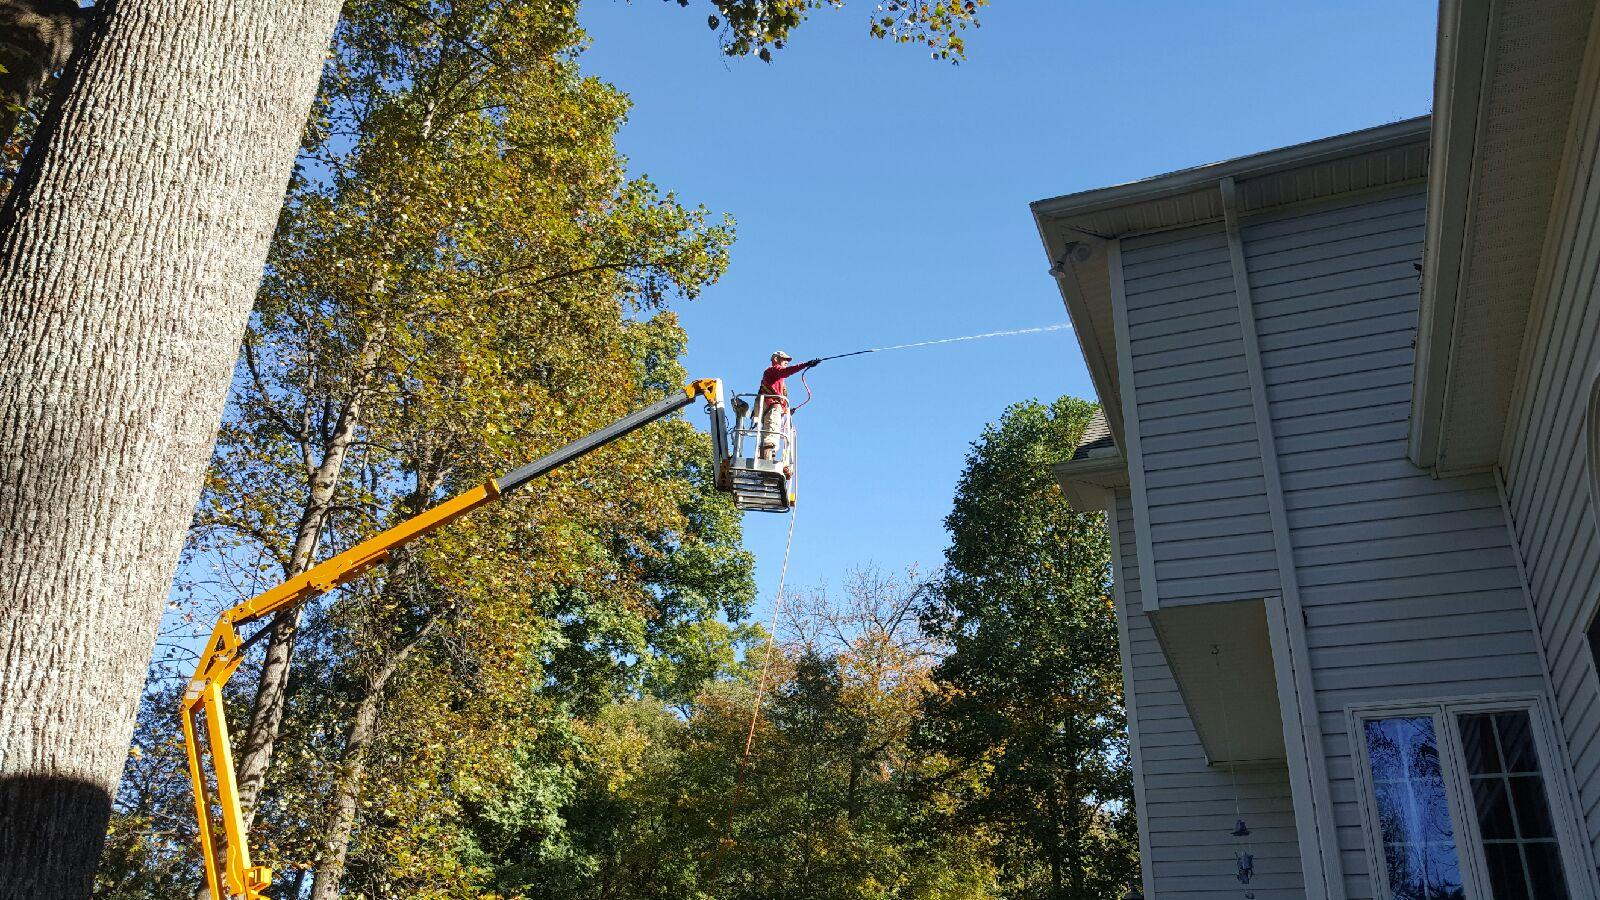 Boom Lift | Pressure Washing Service in Fayetteville PA